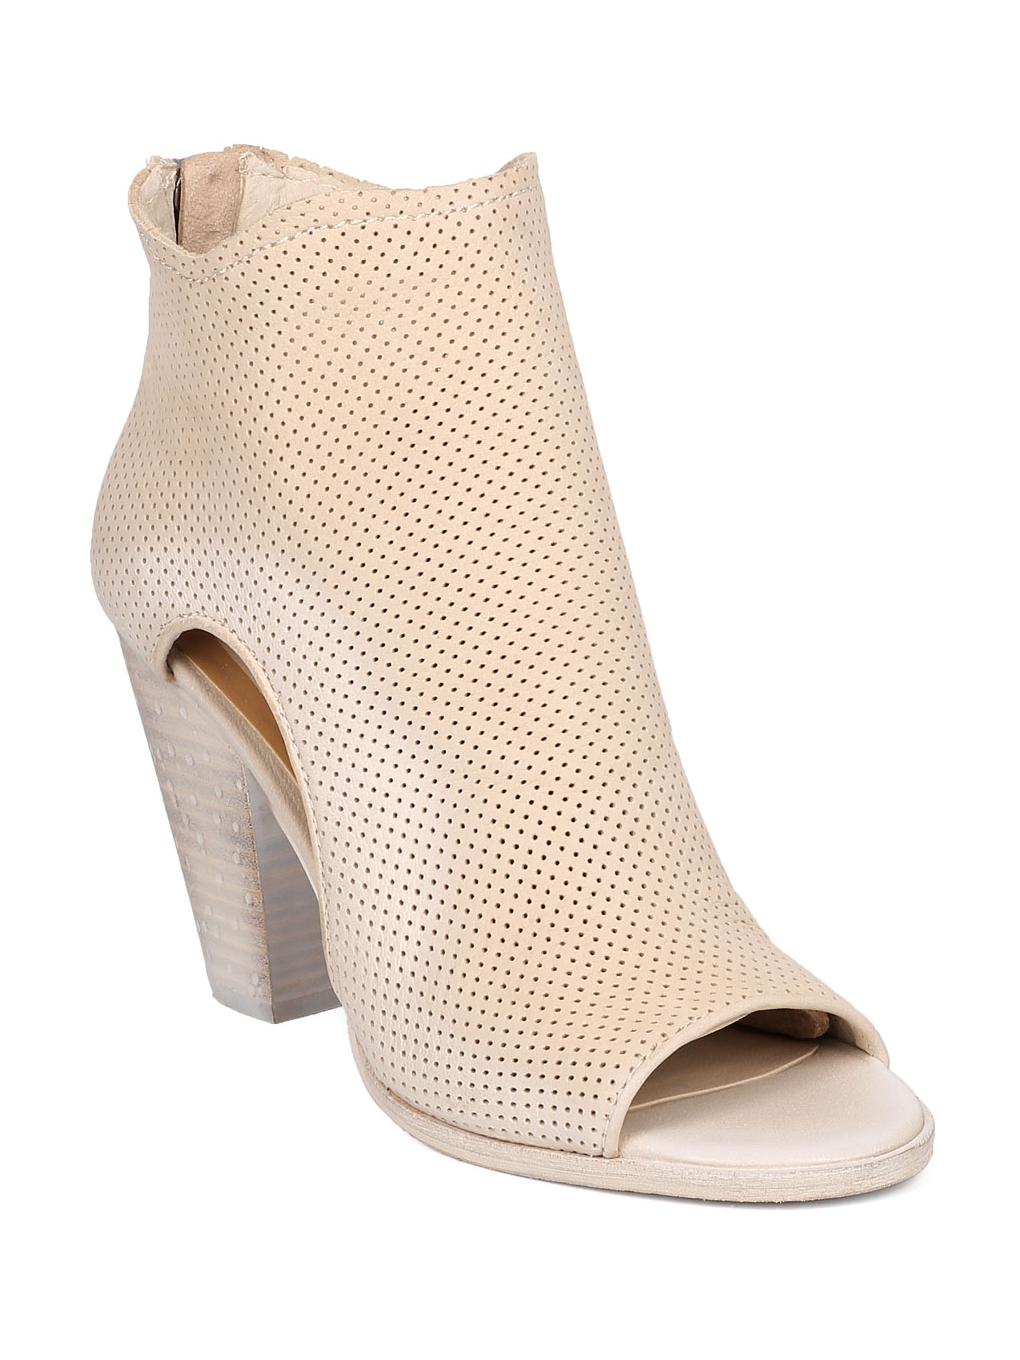 Women Nubuck Perforated Chunky Heel Bootie - Casual, Versatile, Dressy - Cutout Ankle Boot - Harem By Dolce Vita